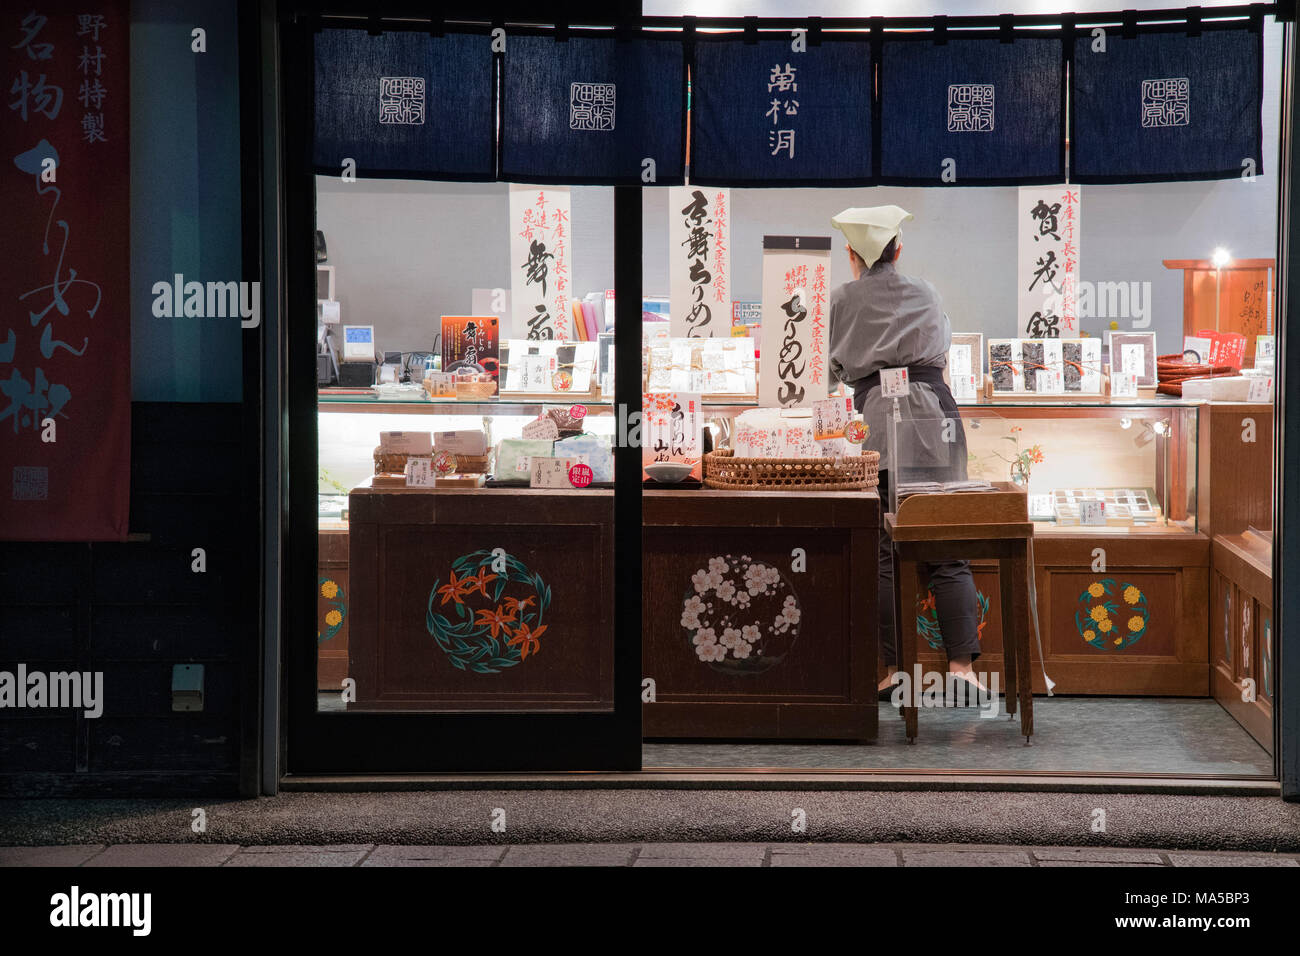 L'Asie, Japon, Nippon, Nihon, Kyoto, la Japonaise Photo Stock